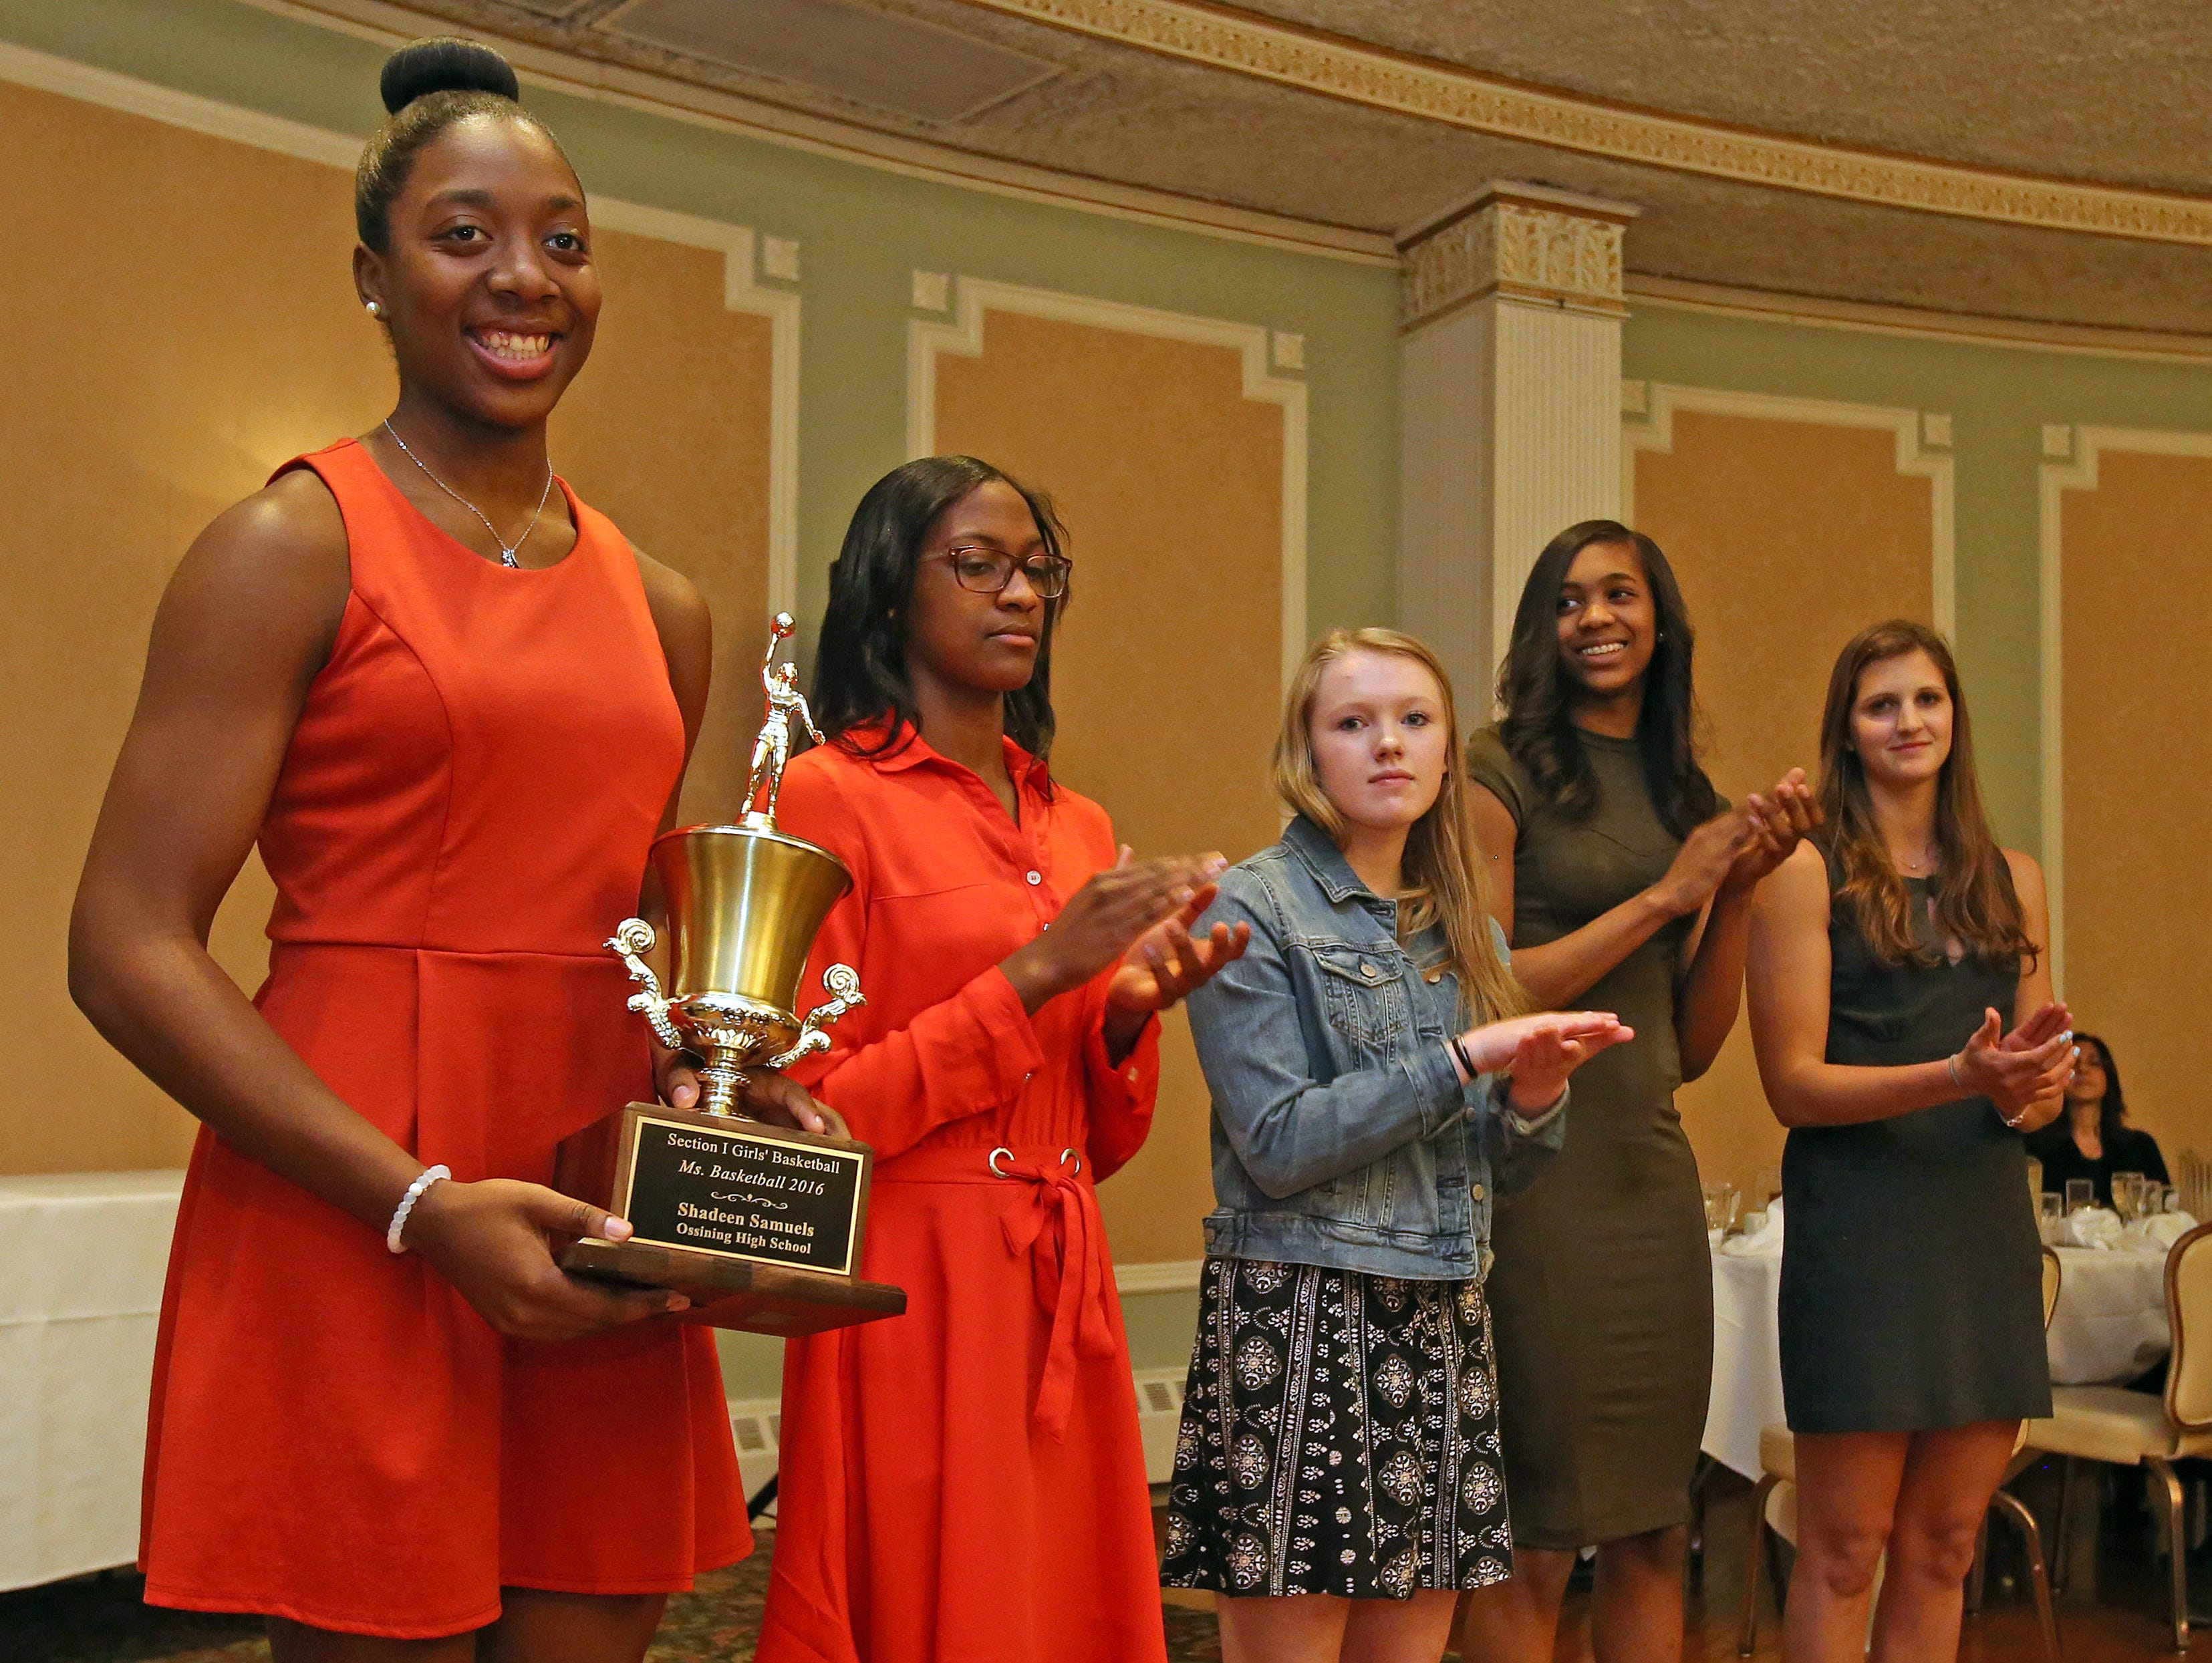 From left, Shadeen Samuels, Teisha Hyman, Lindsay Halpin, Aubrey Griffin, Maddie Eck were named The Journal News girls basketball first team all-stars during Section 1 Coaches Association girls basketball dinner at Colonial Terrace in Courtlandt Manor on March 29, 2016.